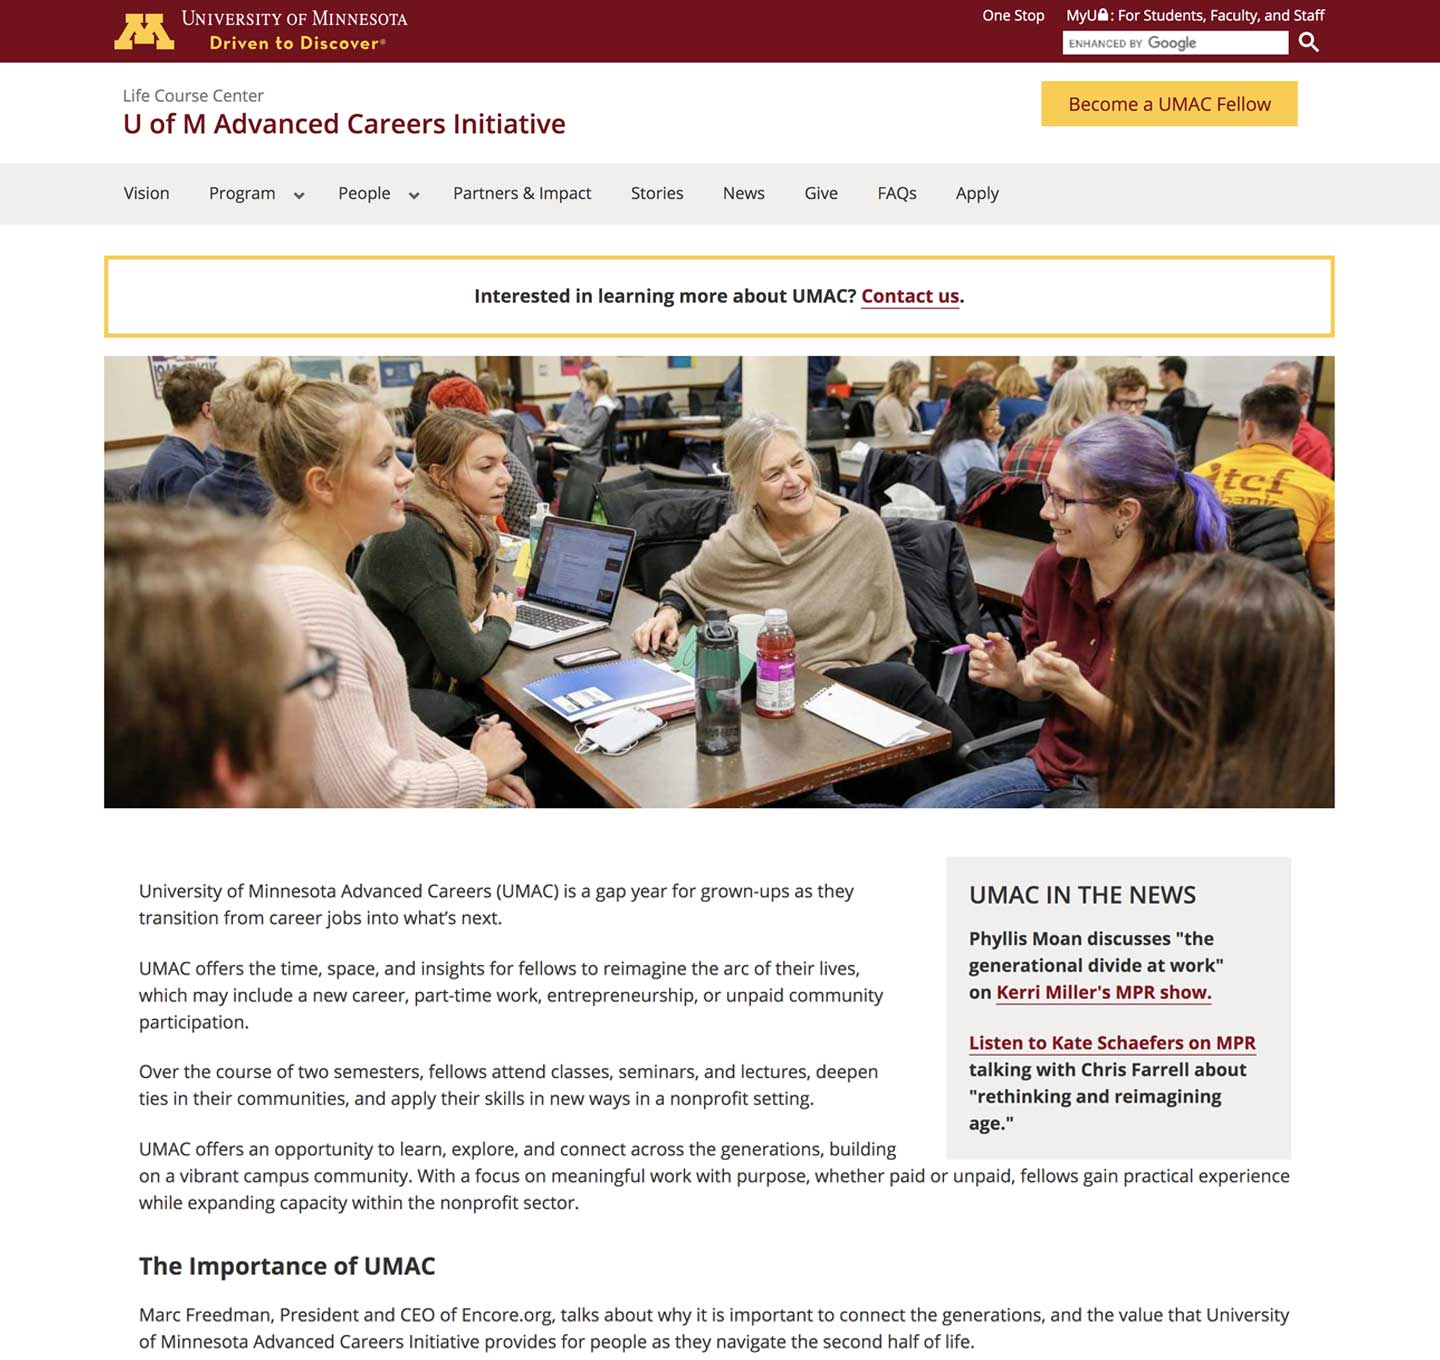 UMN Advanced Careers Initiative website screenshot